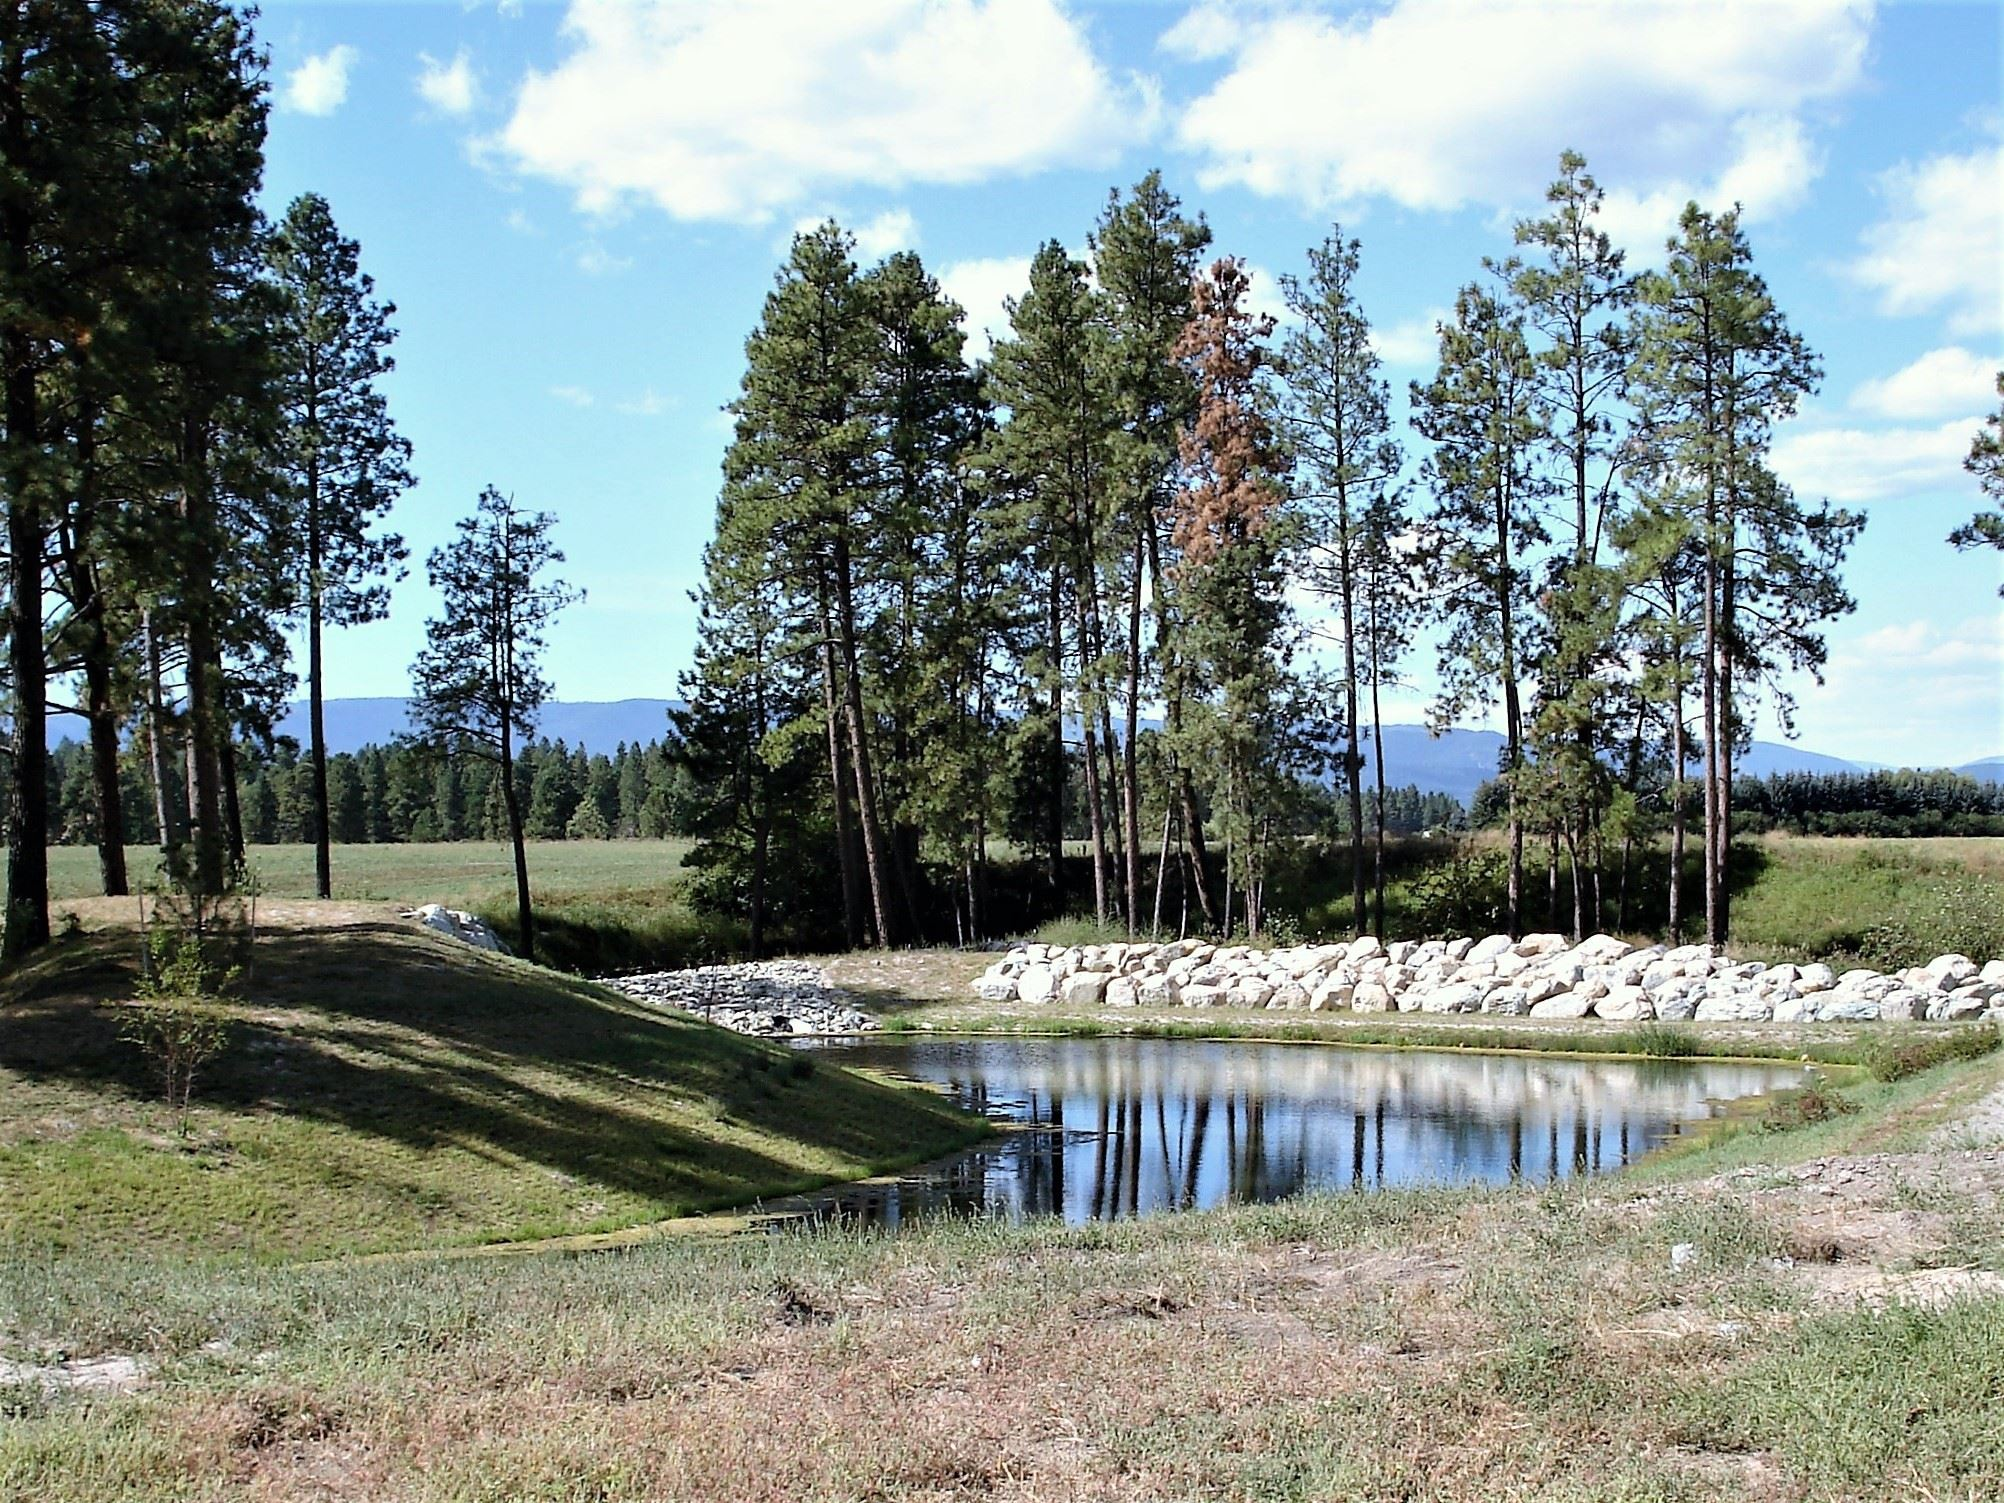 Stormwater management control pond with trees around it